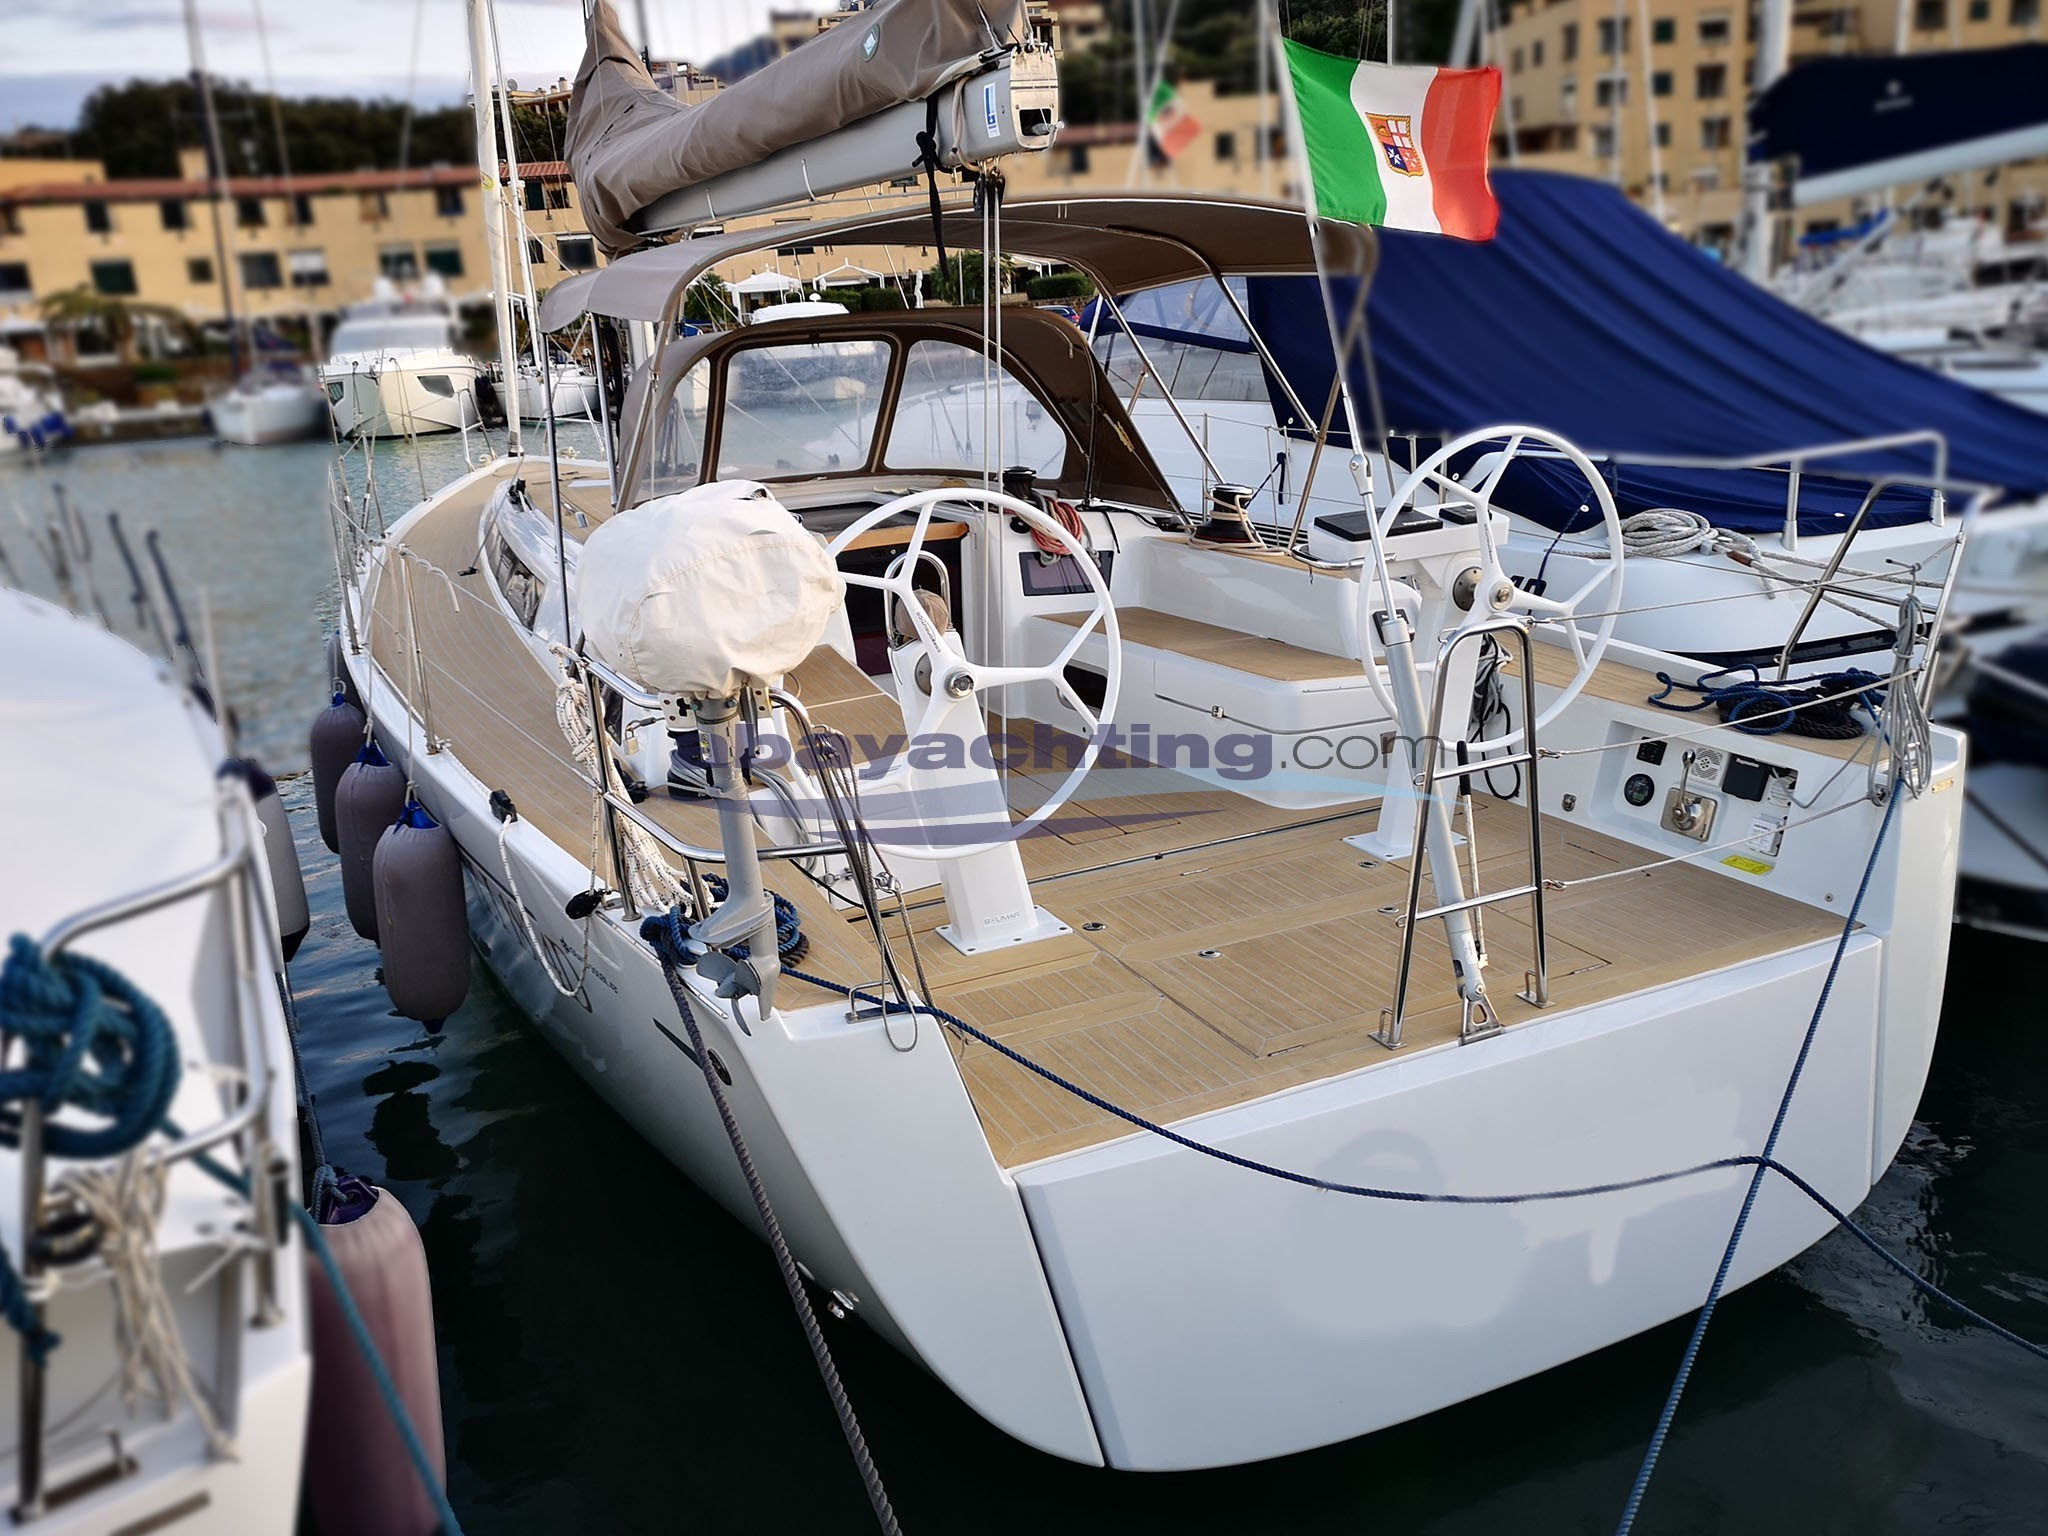 New arrival 2018 Grand Soleil 43 Maletto